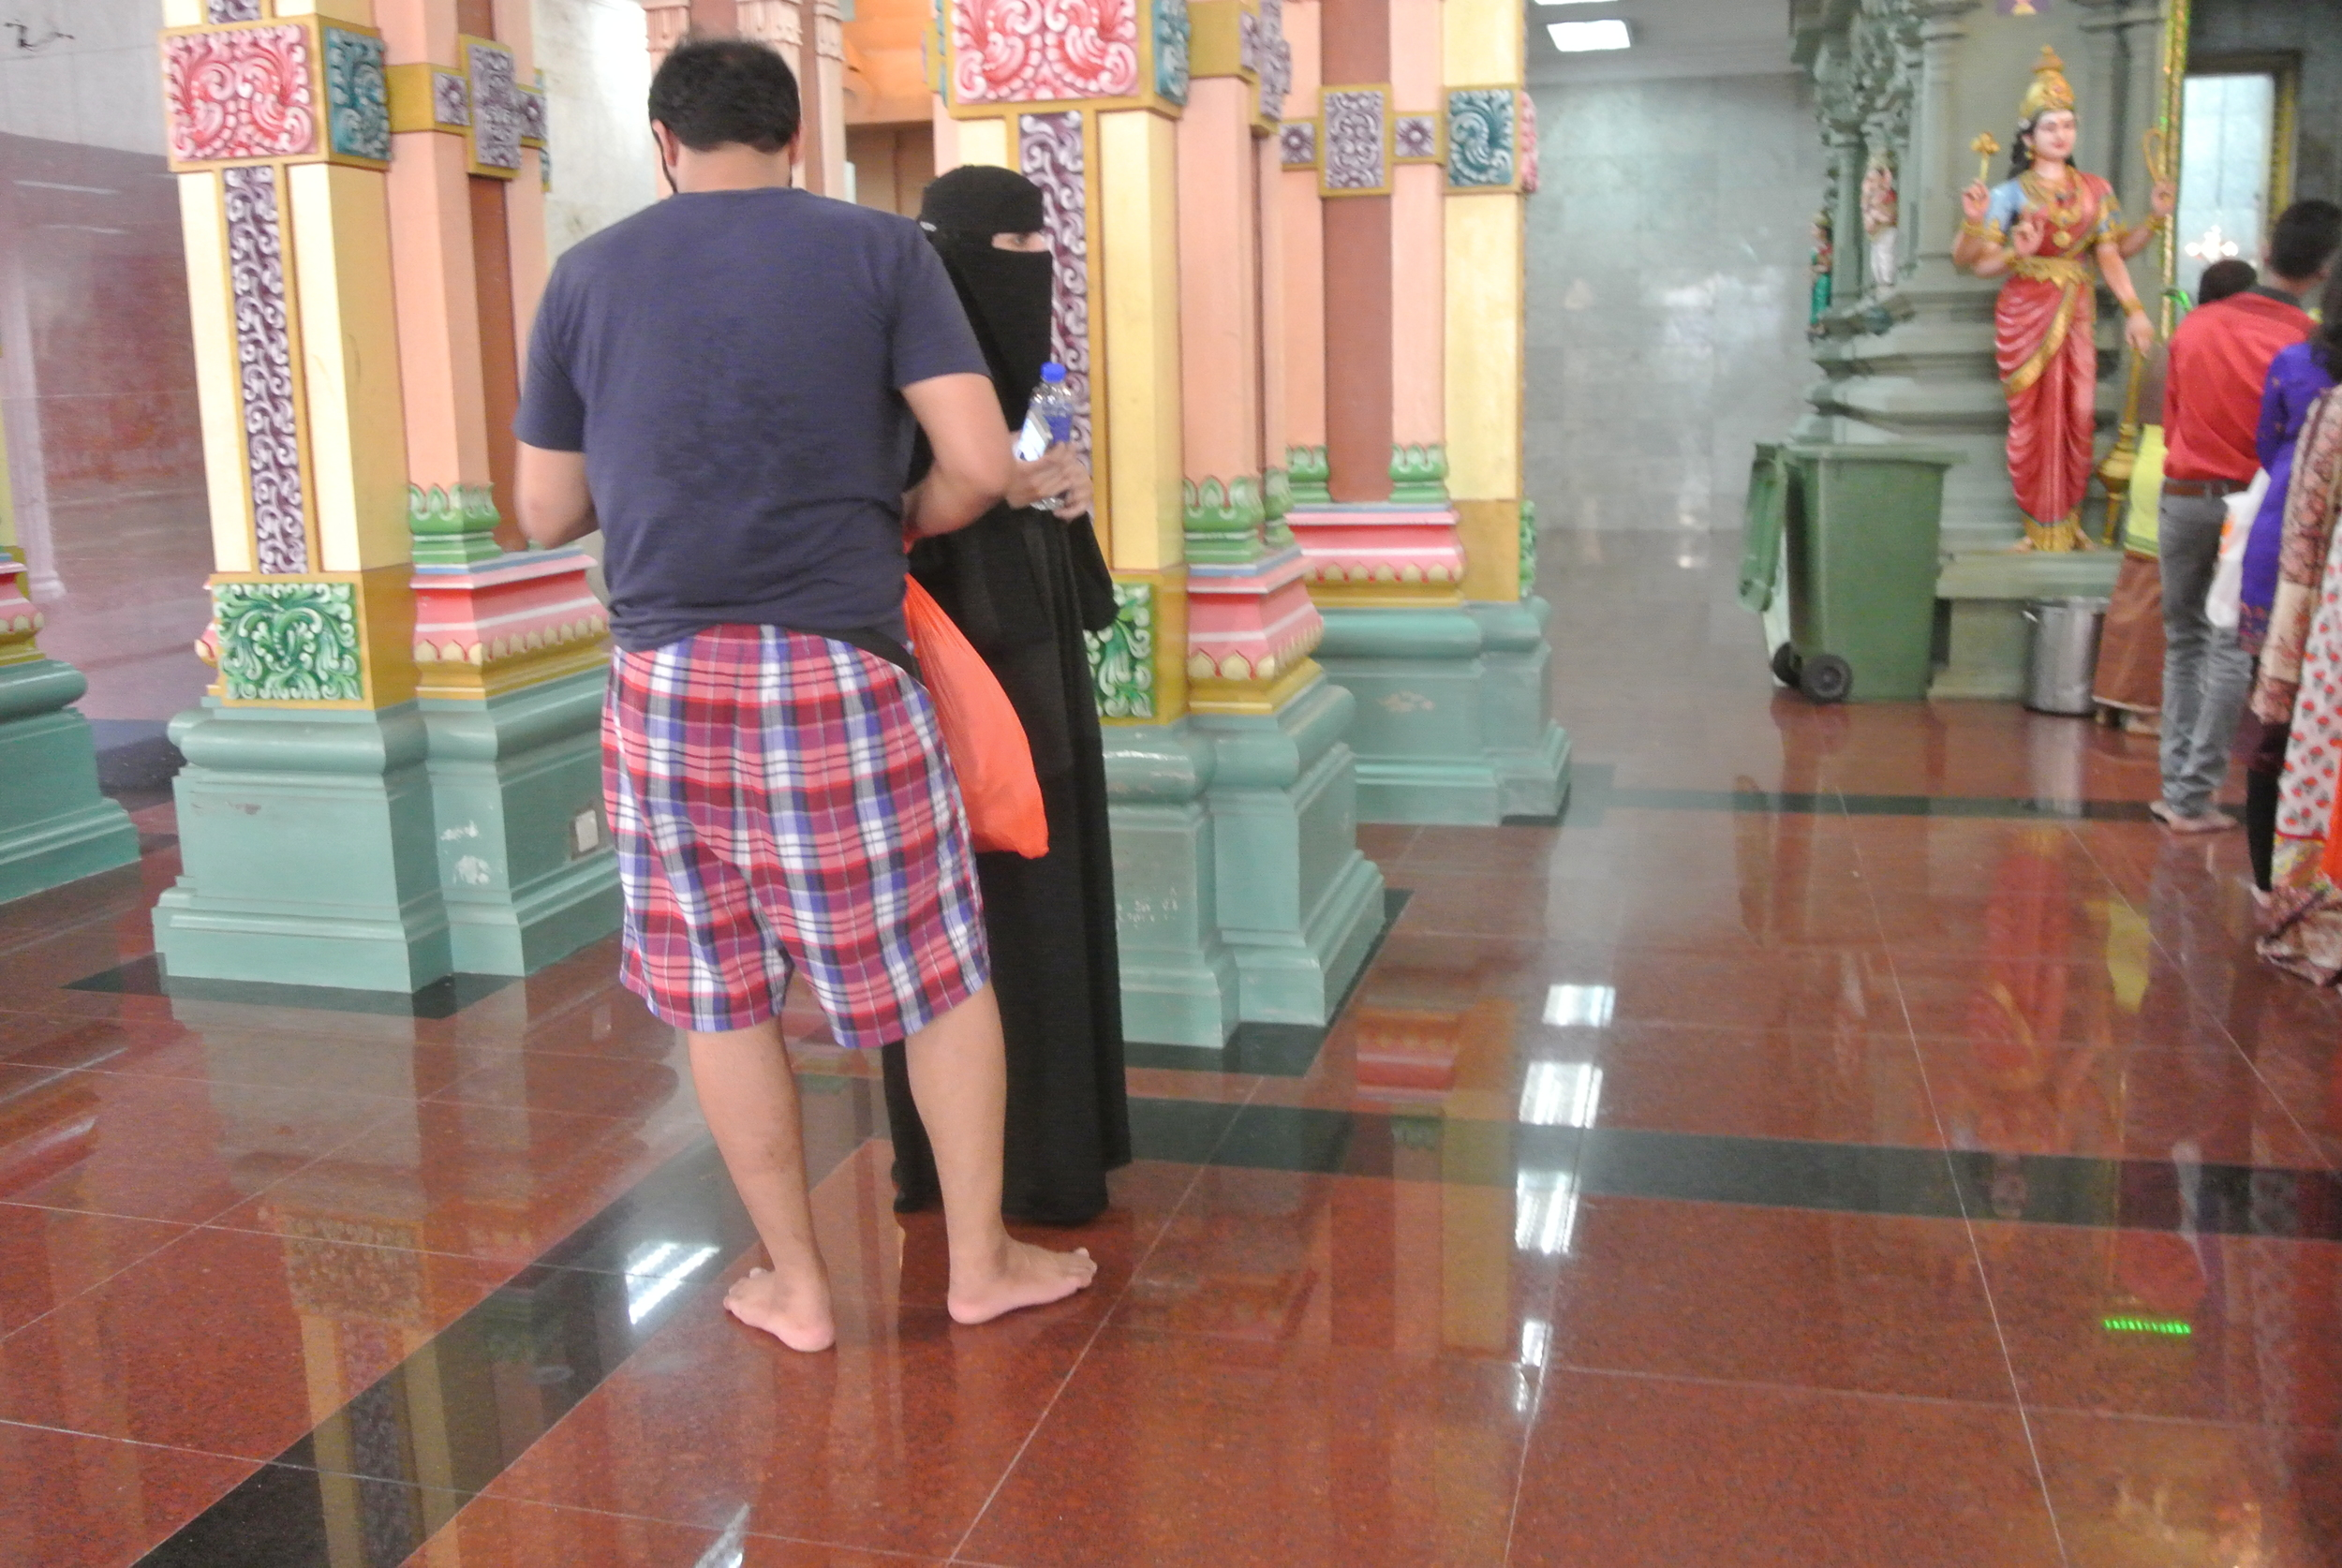 A Muslim couple checking out the scene at a Hindu temple